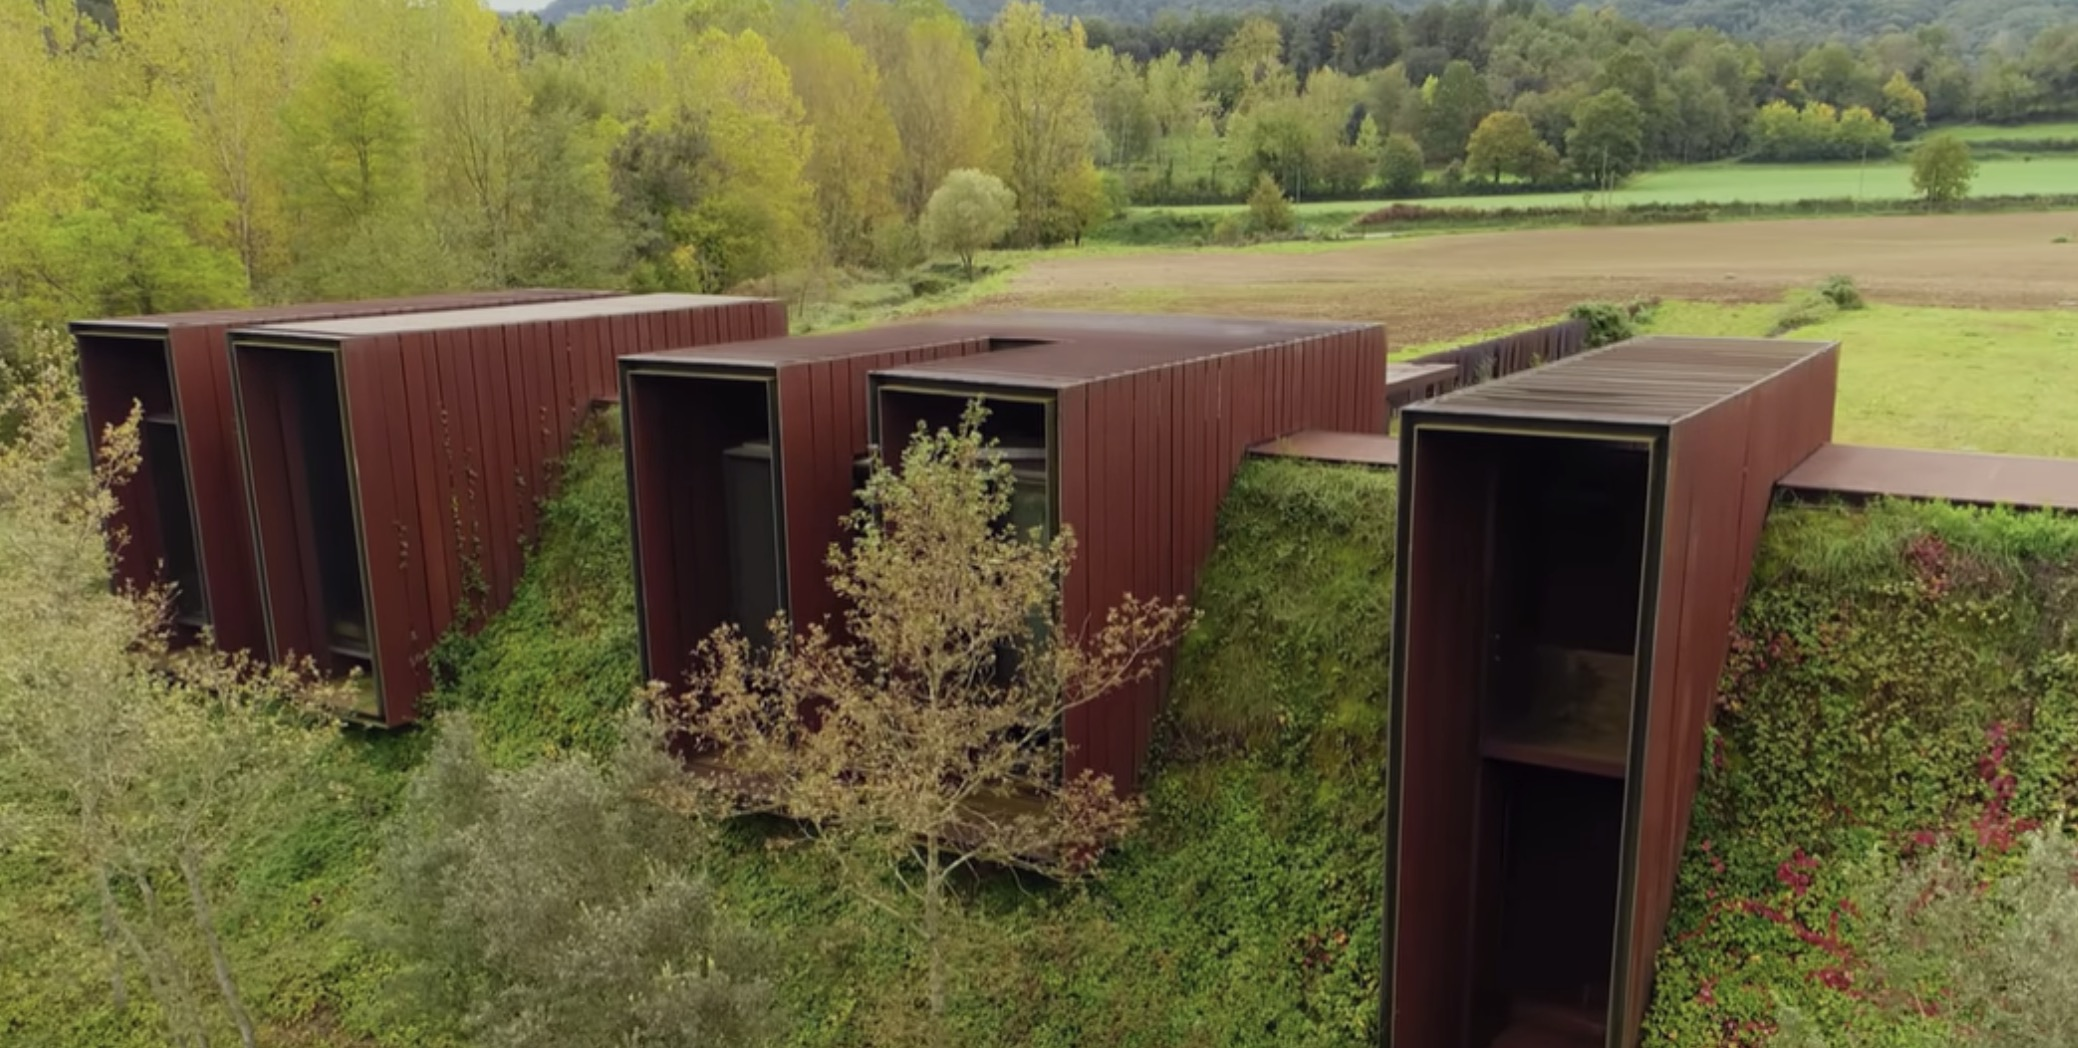 A bermed house built into a green hill features five agrarian-inspired boxes meant to look like farm sheds.